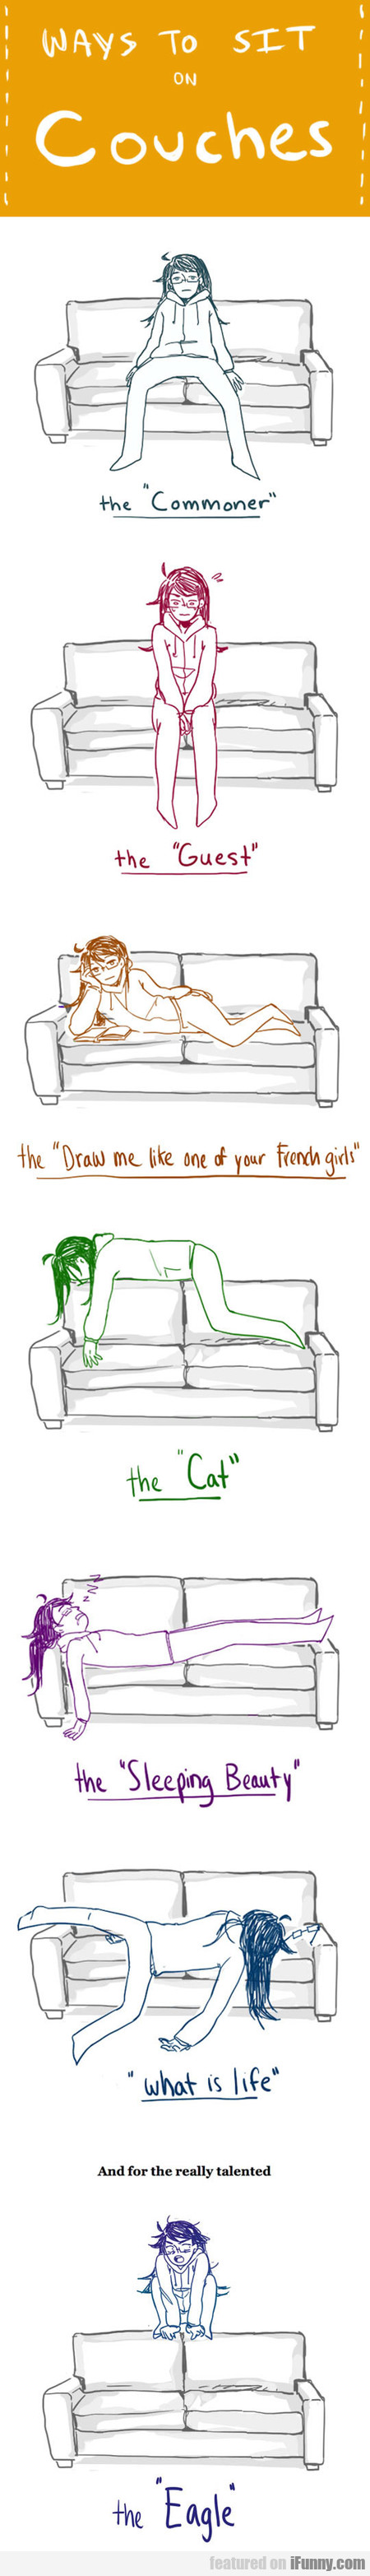 Ways To Sit On Couches